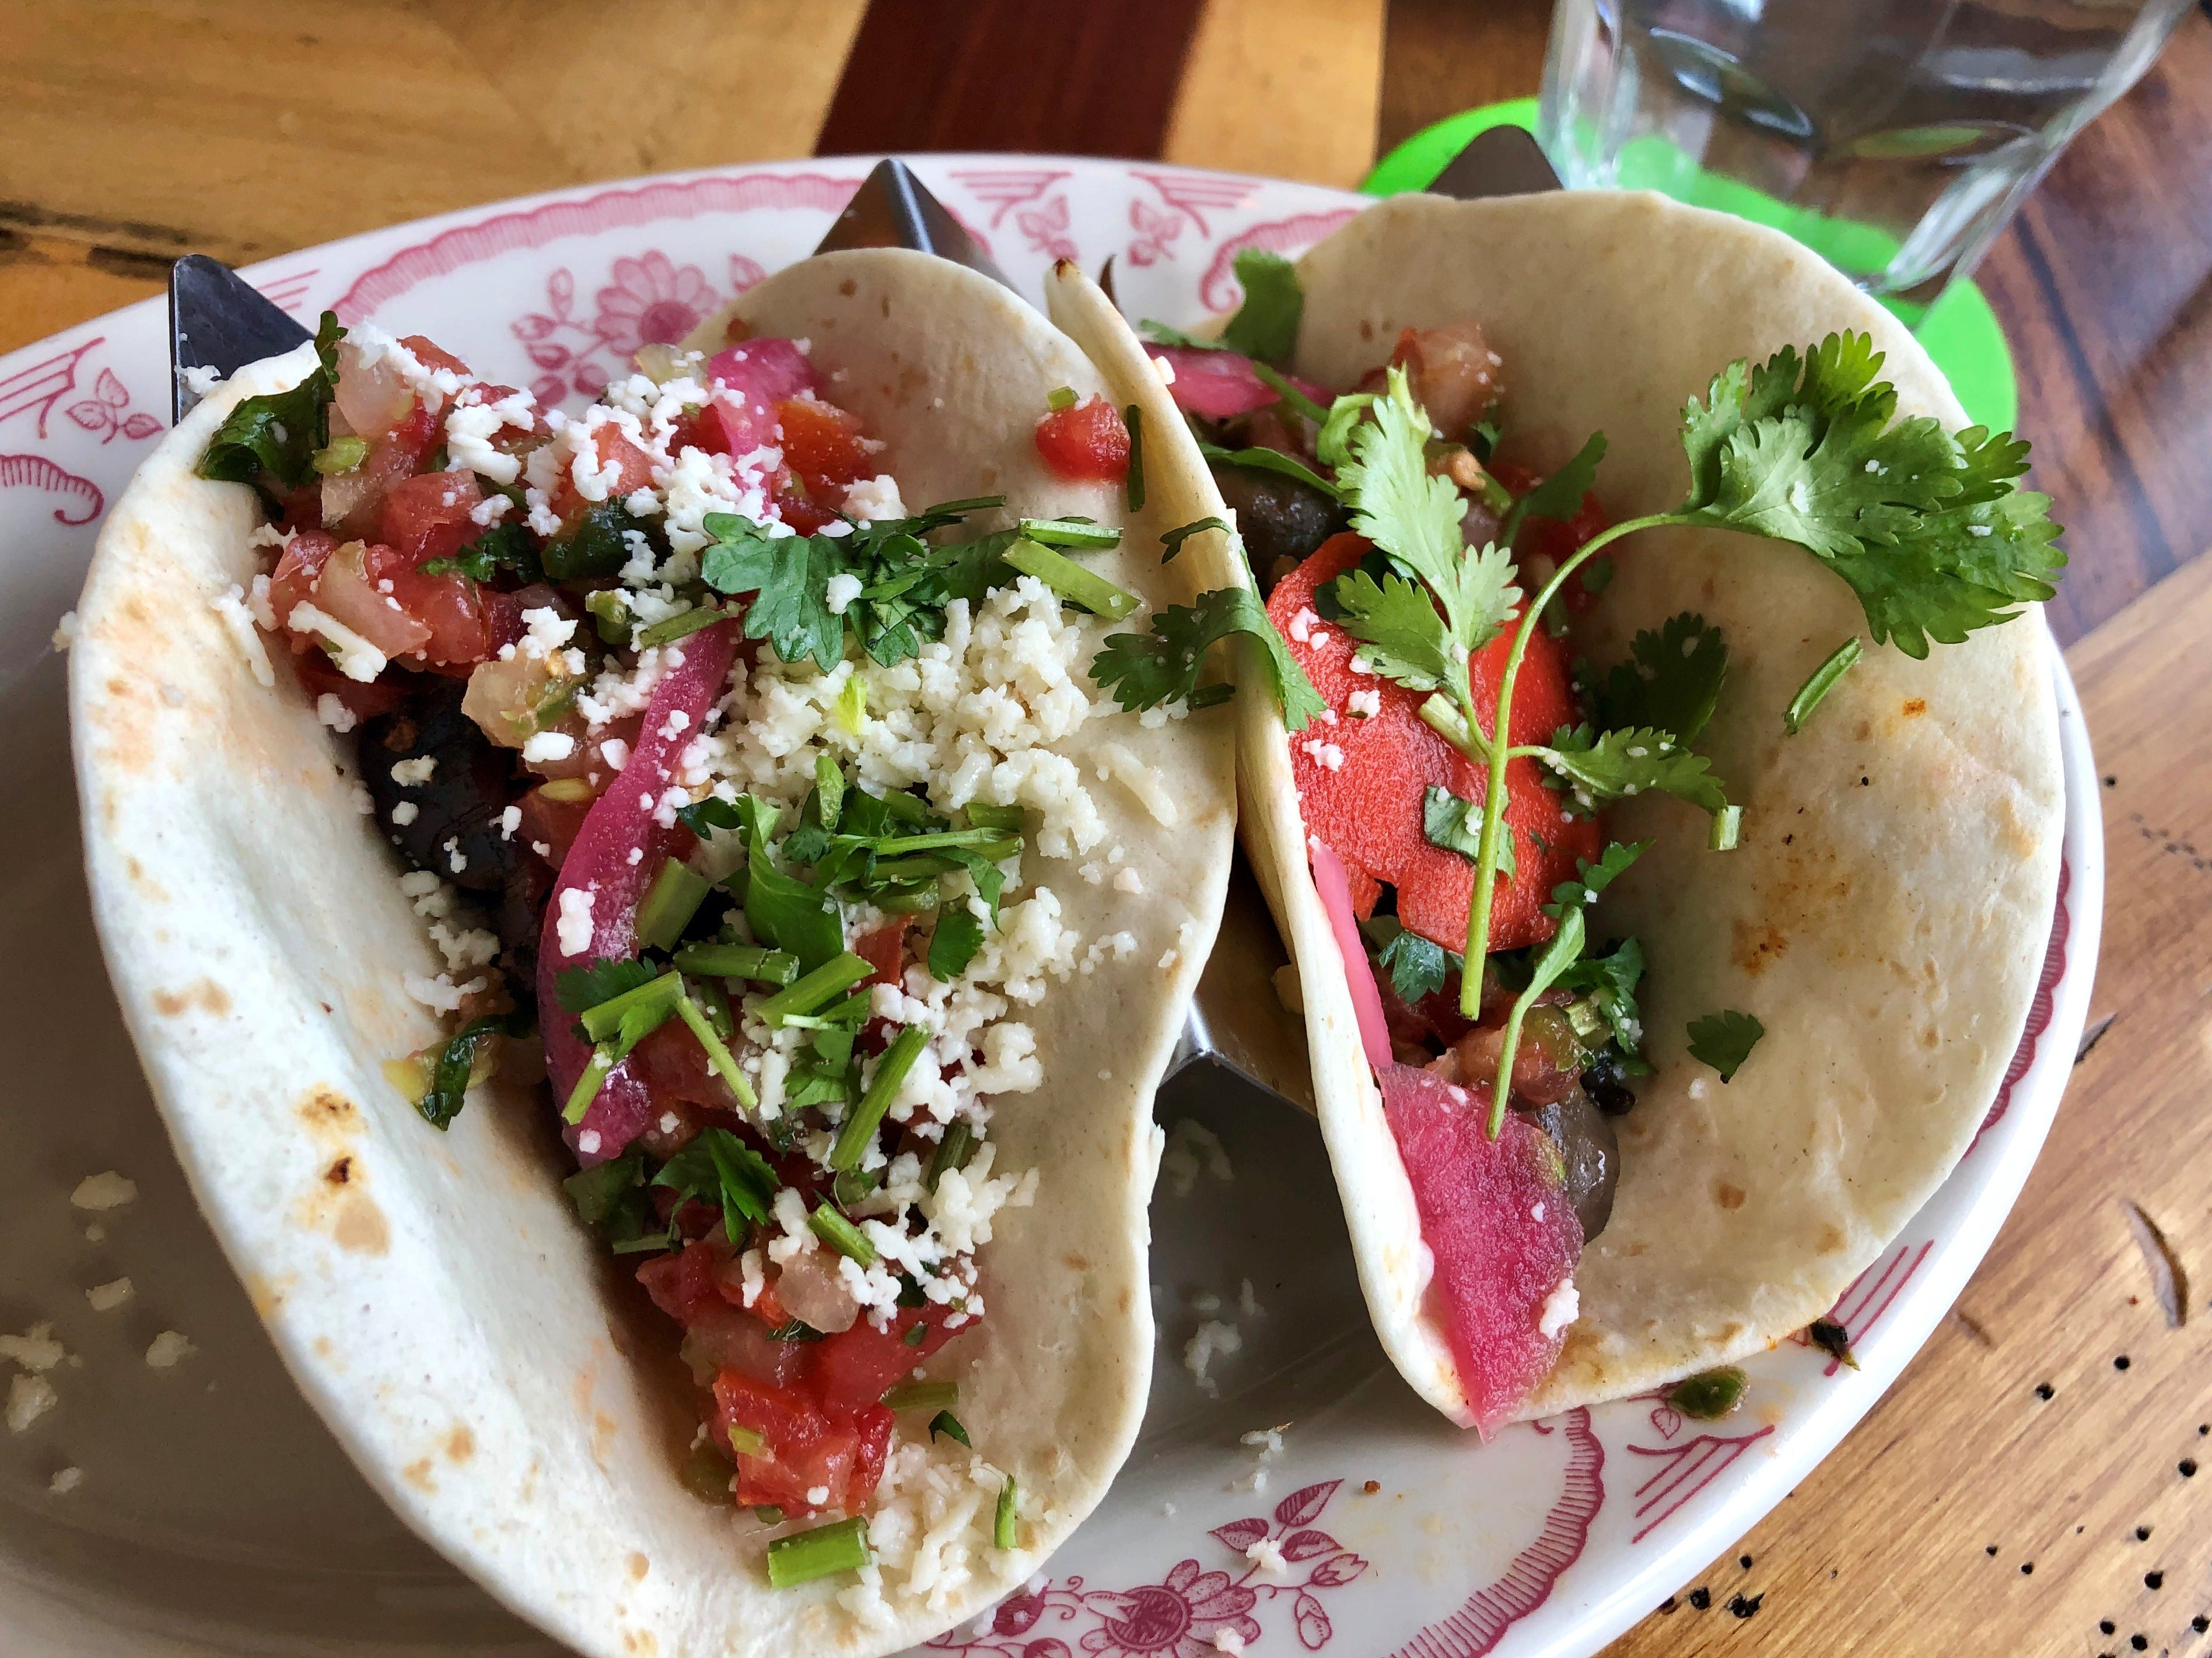 Rocco's actual tacos (priced from $4.50 to $6.50 each) are fine, though I think you can find better at most any local taqueria.